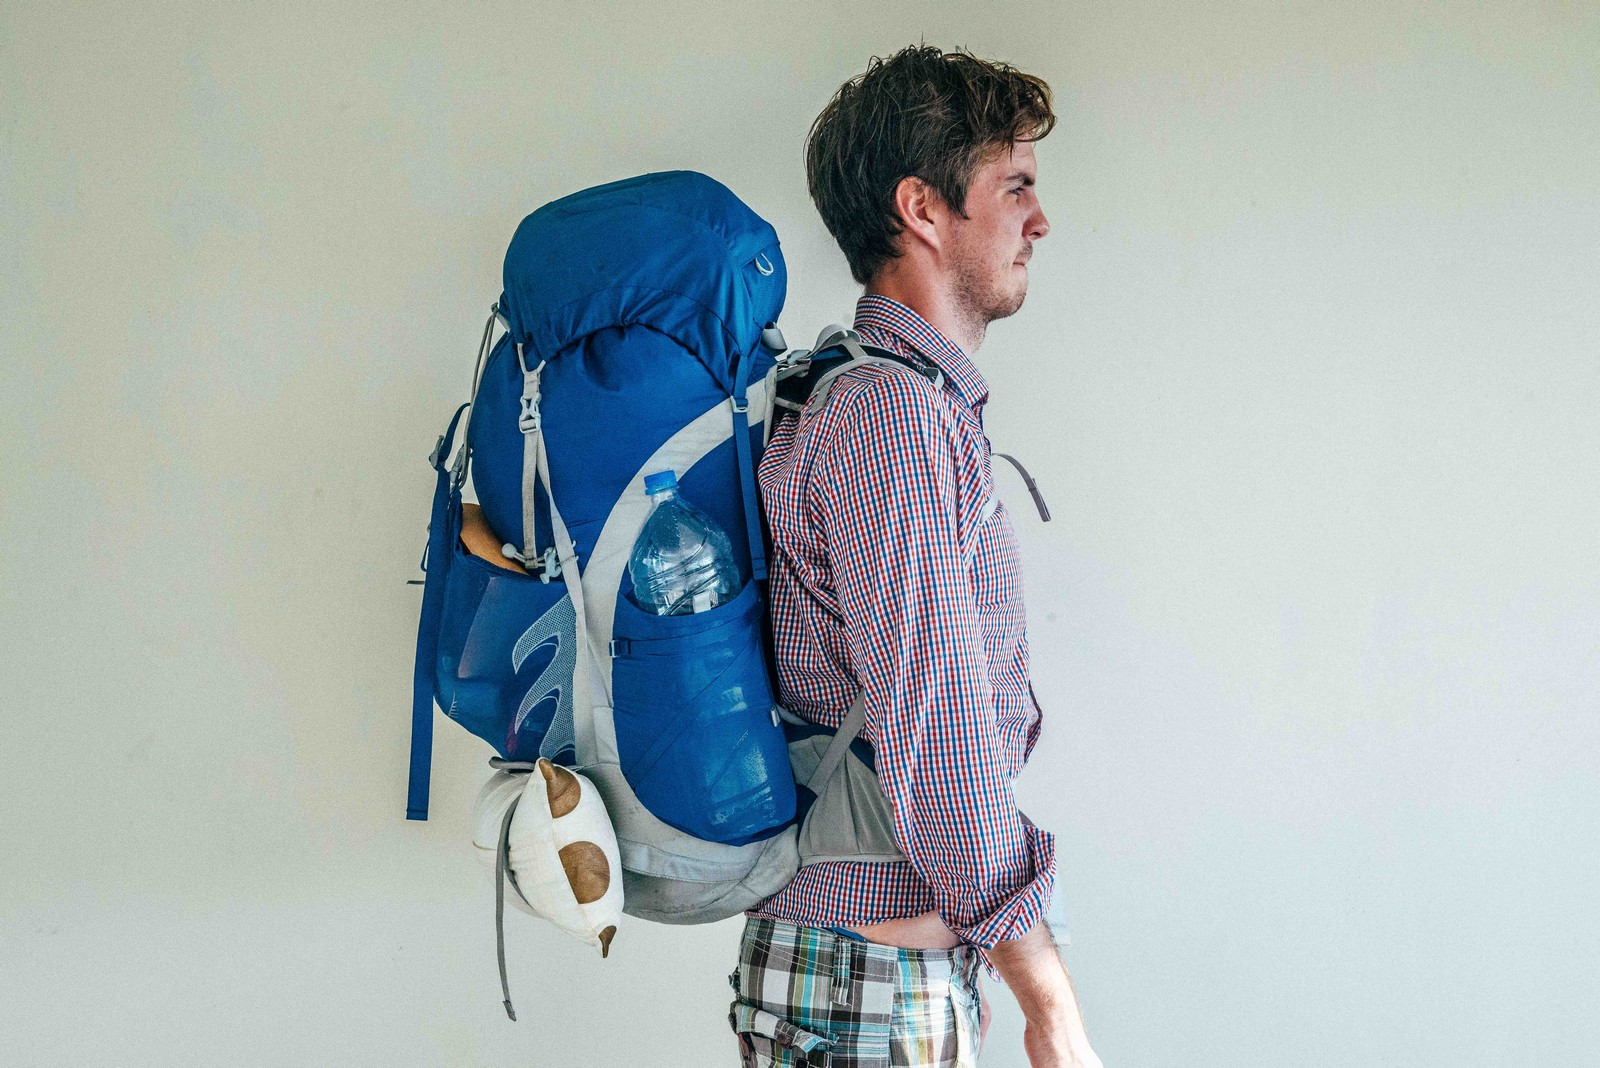 Choosing the right backpack size